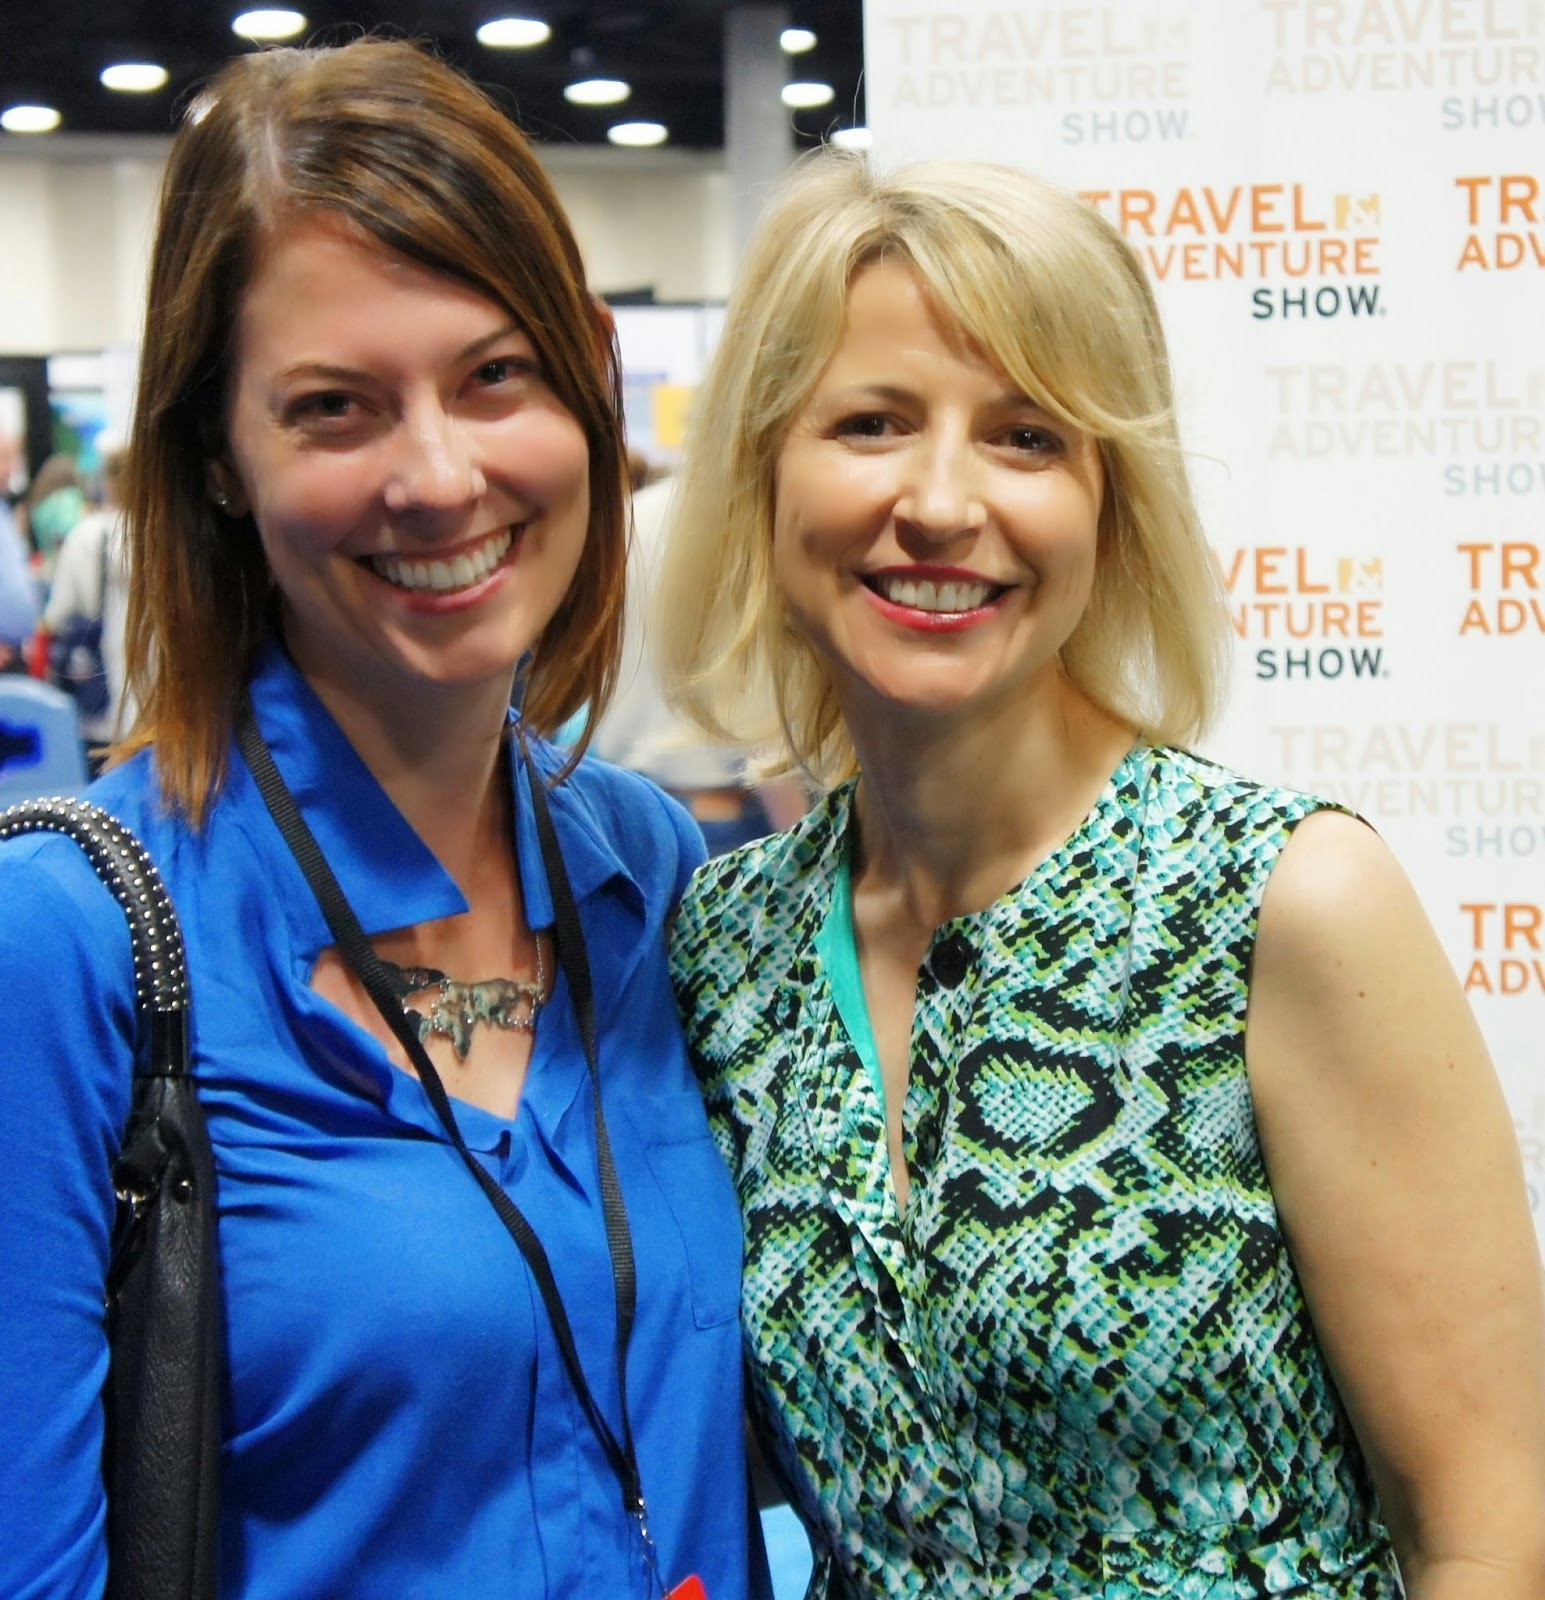 Samantha Brown San Diego Travel & Adventure Show